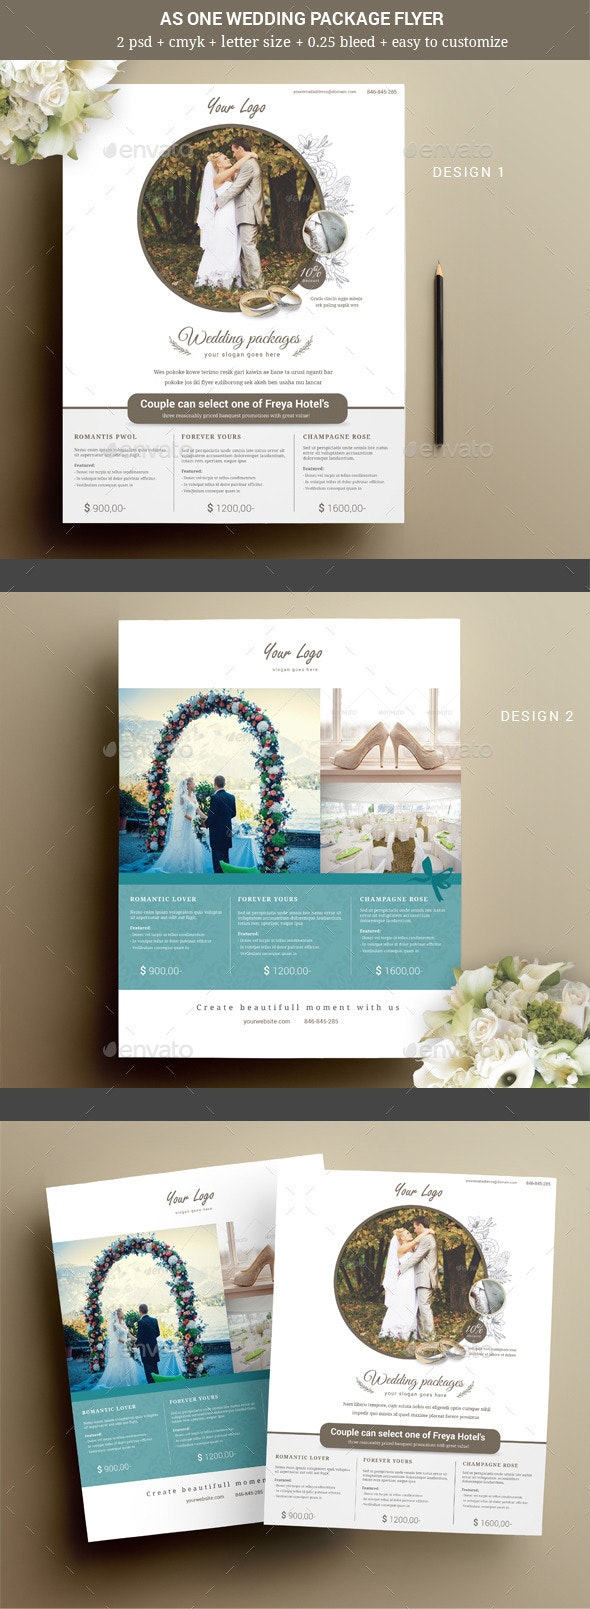 As One Wedding Event Flyer - Weddings Cards & Invites